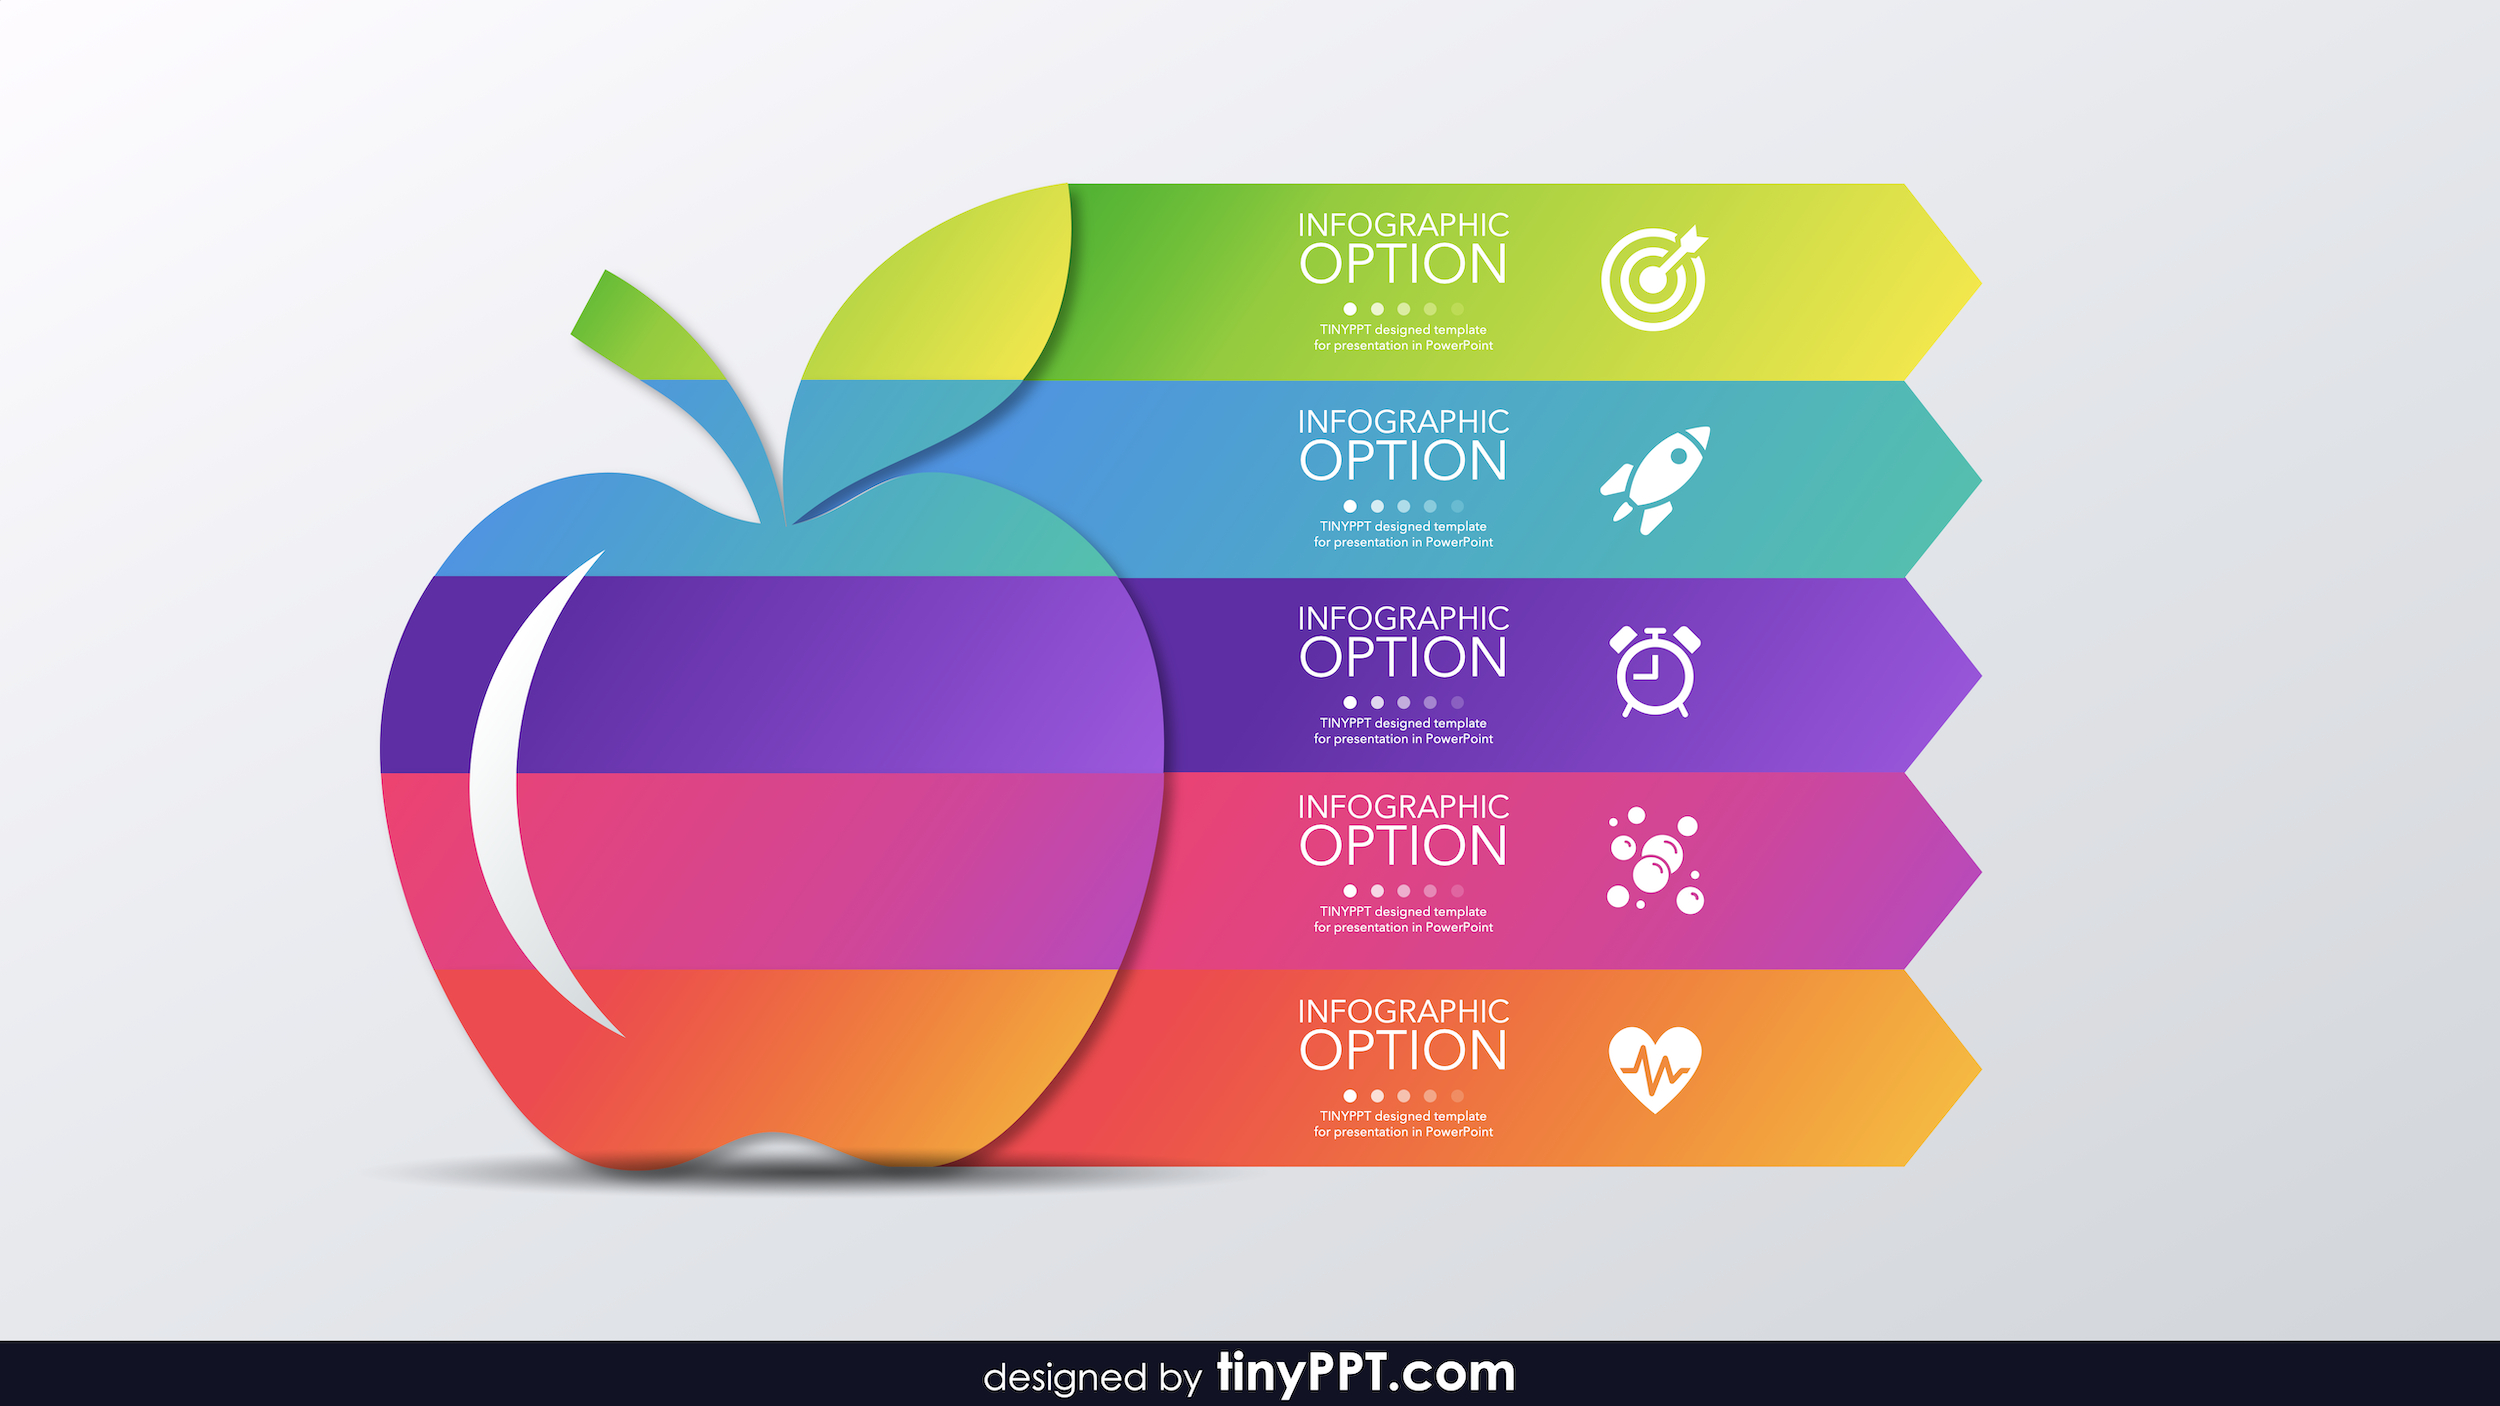 Animated Powerpoint Template Free Download Ideas Impressive In Powerpoint Animated Templates Free Download 2010